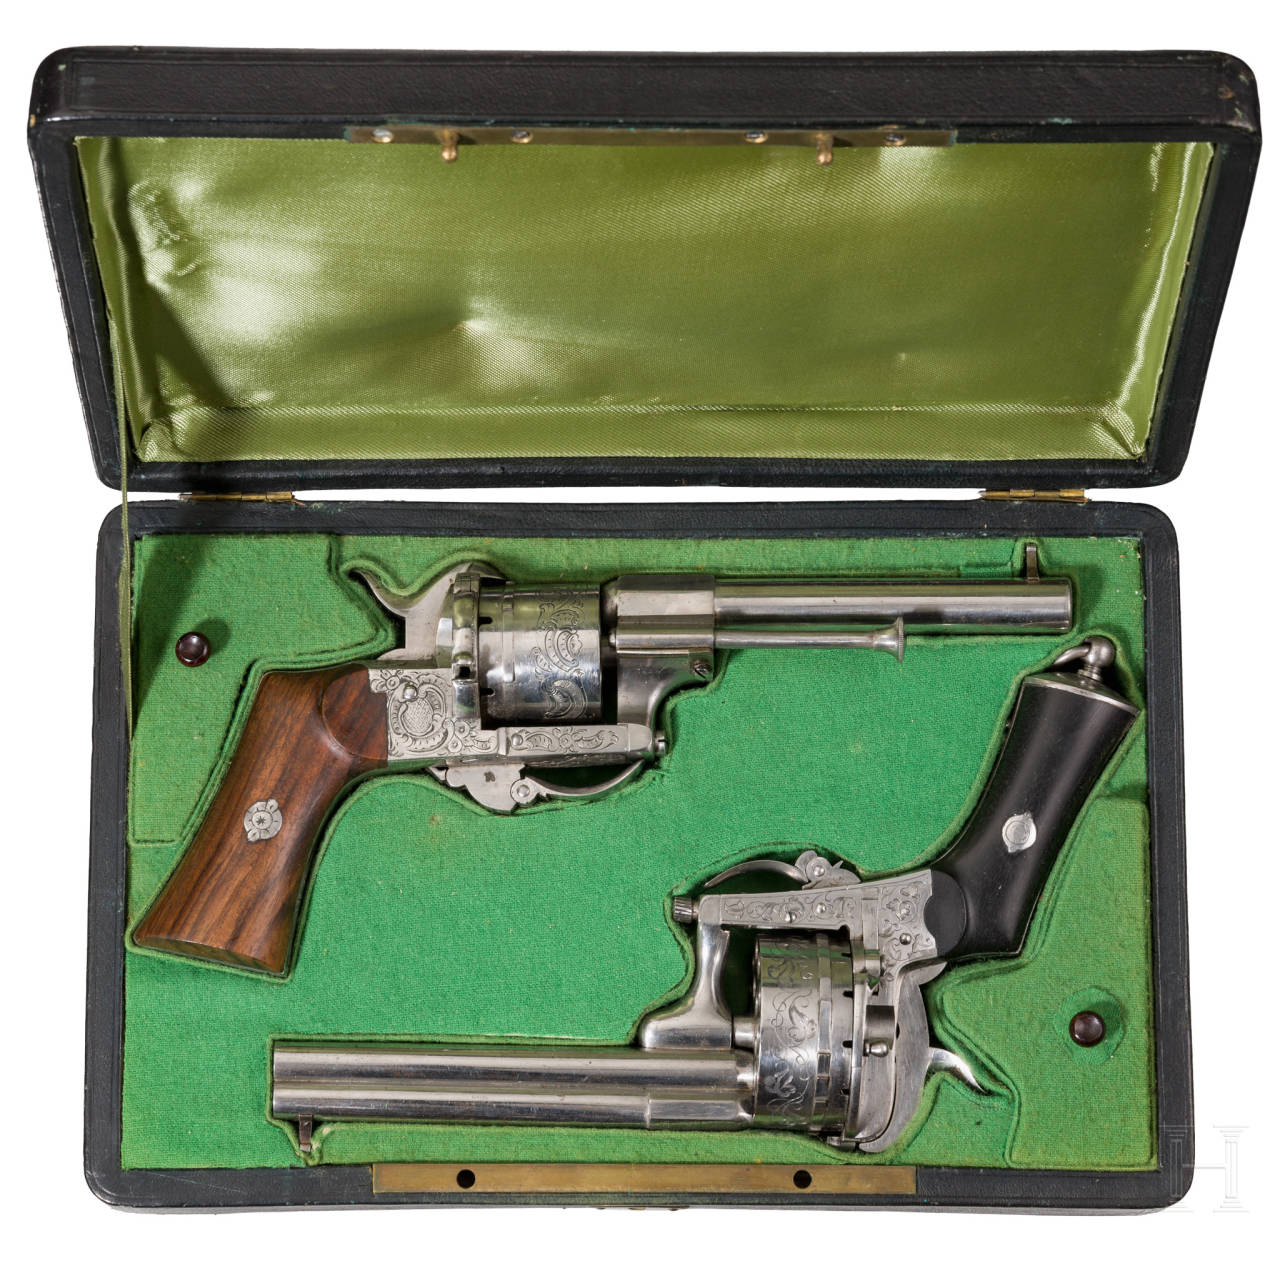 Two cased six-shot and one 18-shot pinfire revolvers, Belgium, ca. 1860